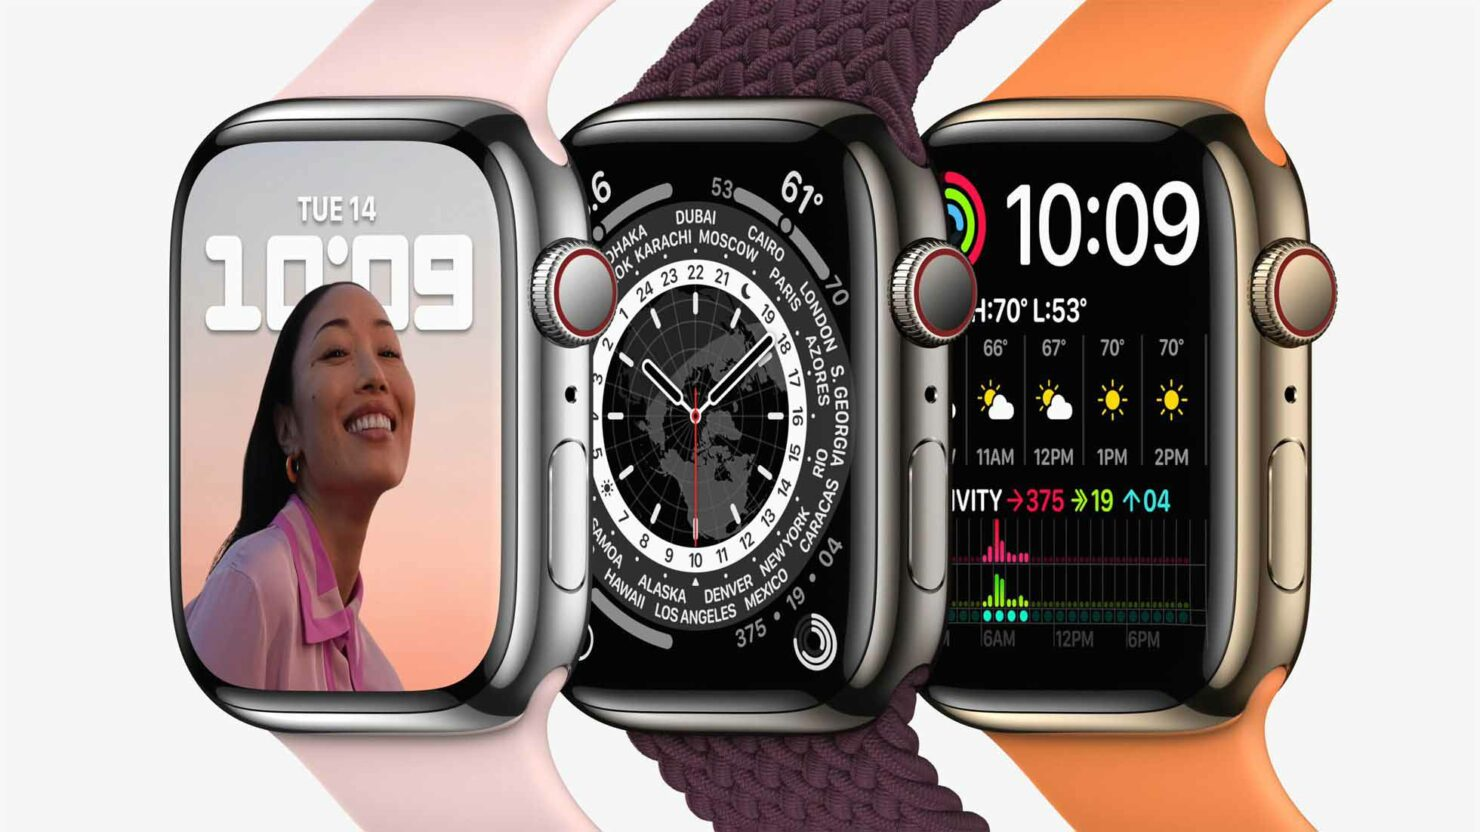 Apple Watch Series 7 Can Wirelessly Transfer Data Thanks to a New Module, but the Feature Is Locked for Some Reason